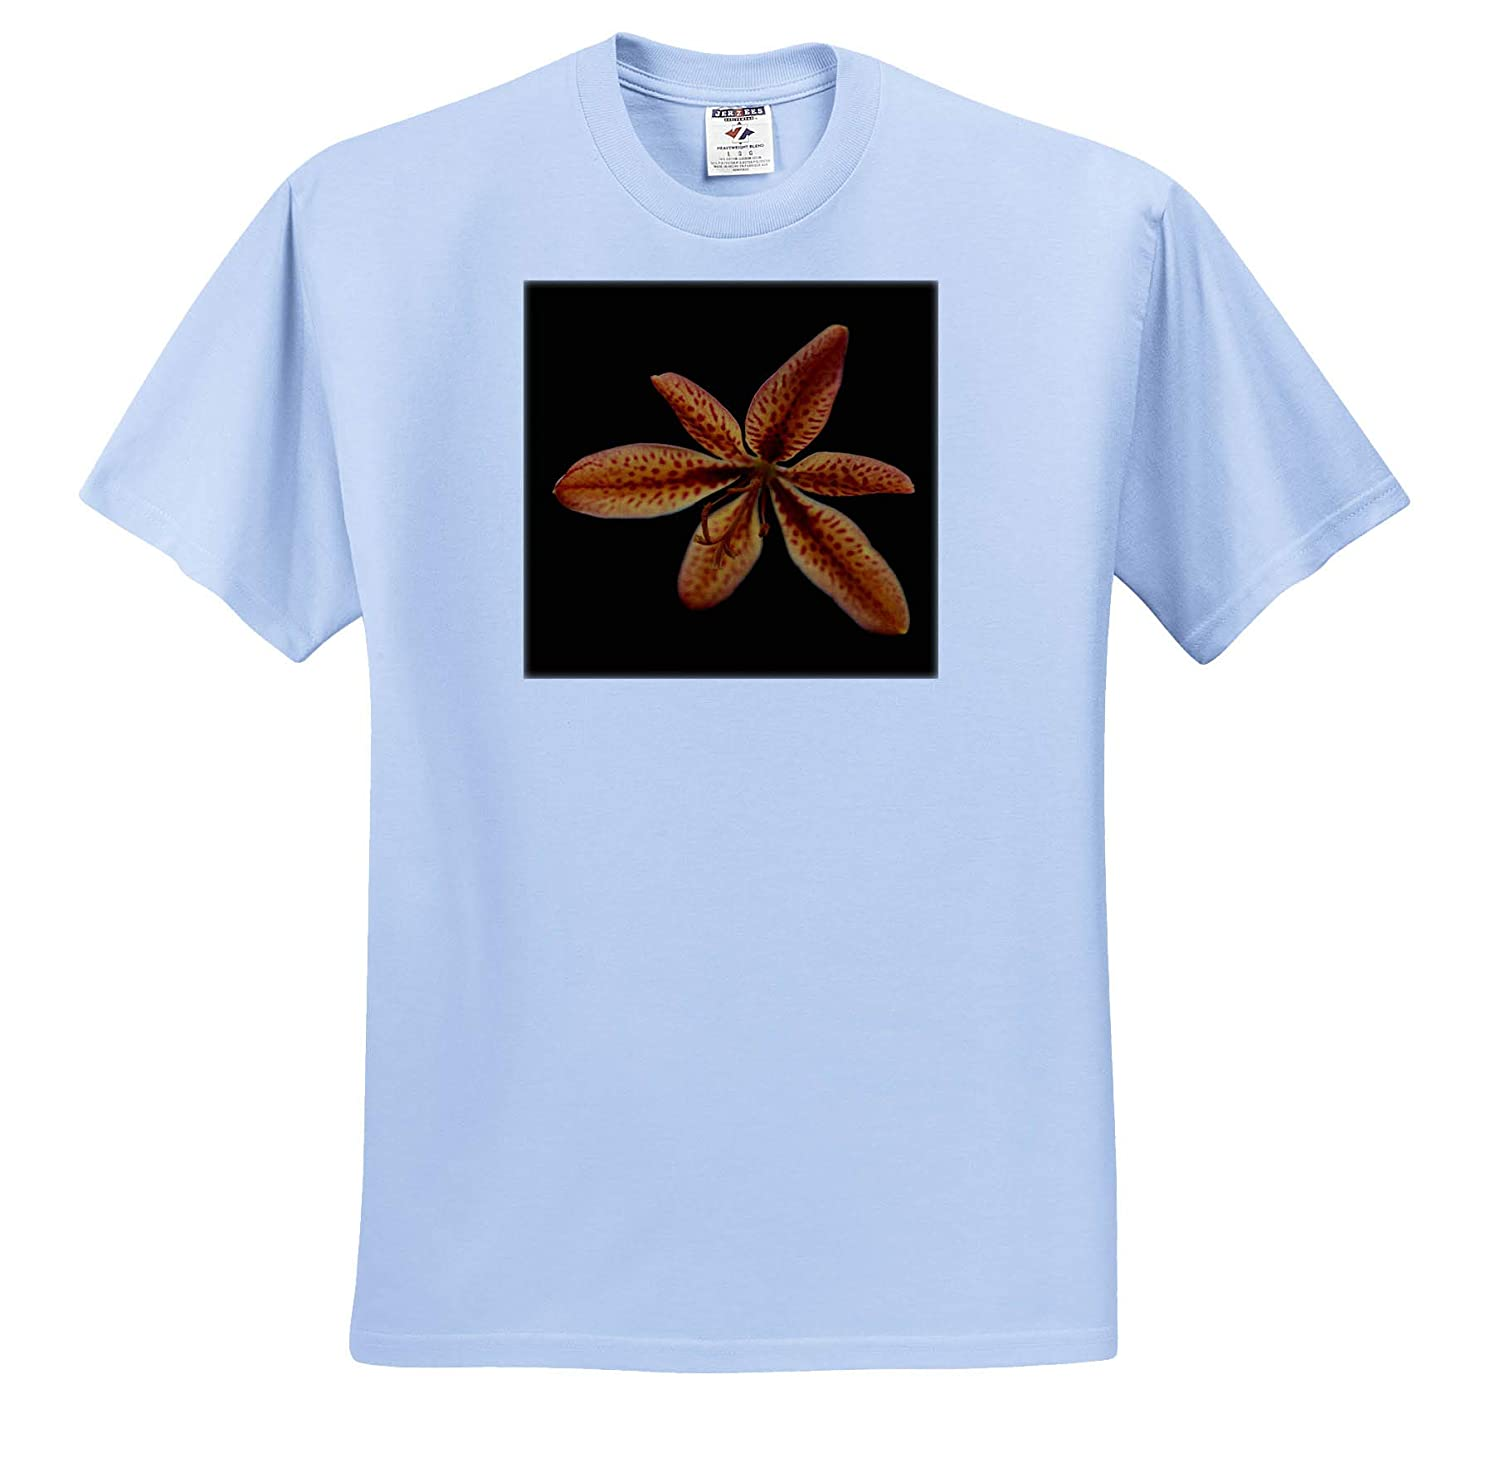 Macro Photograph of a BlackBerry Lily on a Black Background ts/_320123 - Adult T-Shirt XL 3dRose Stamp City Flowers